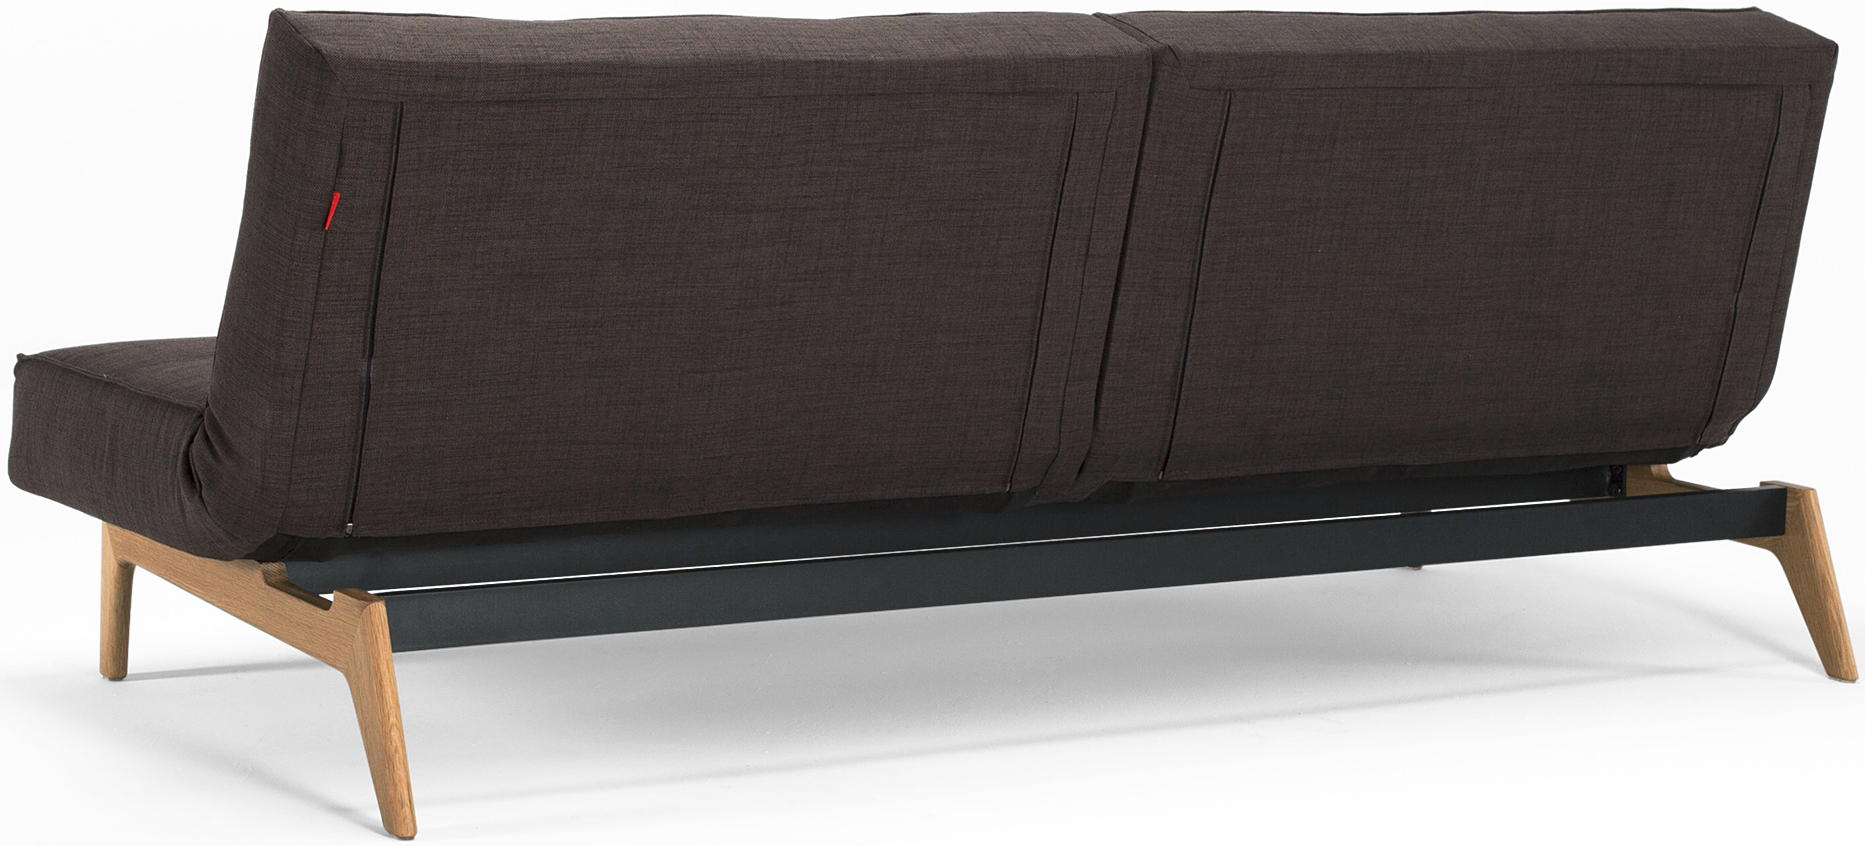 innovation flat splitback sofa